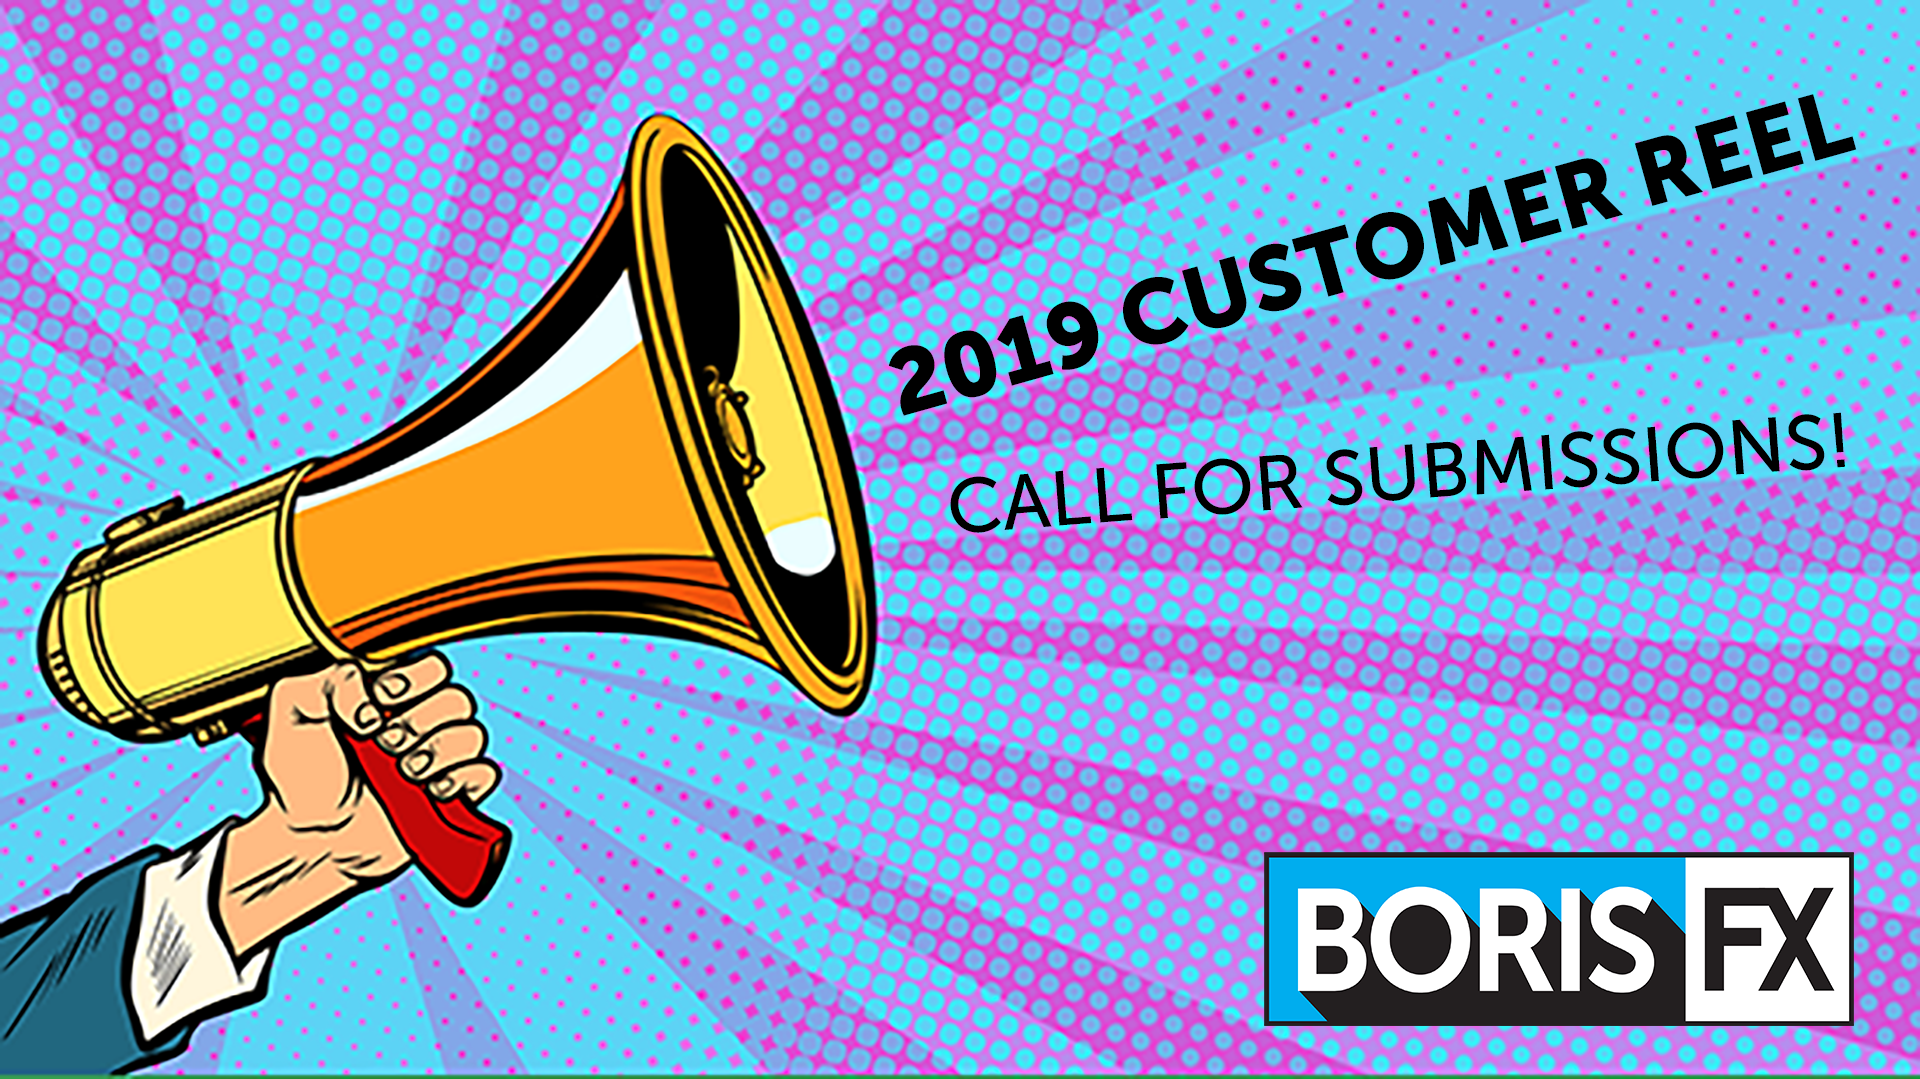 Call for submitting clips for 2019 Boris FX customer reel